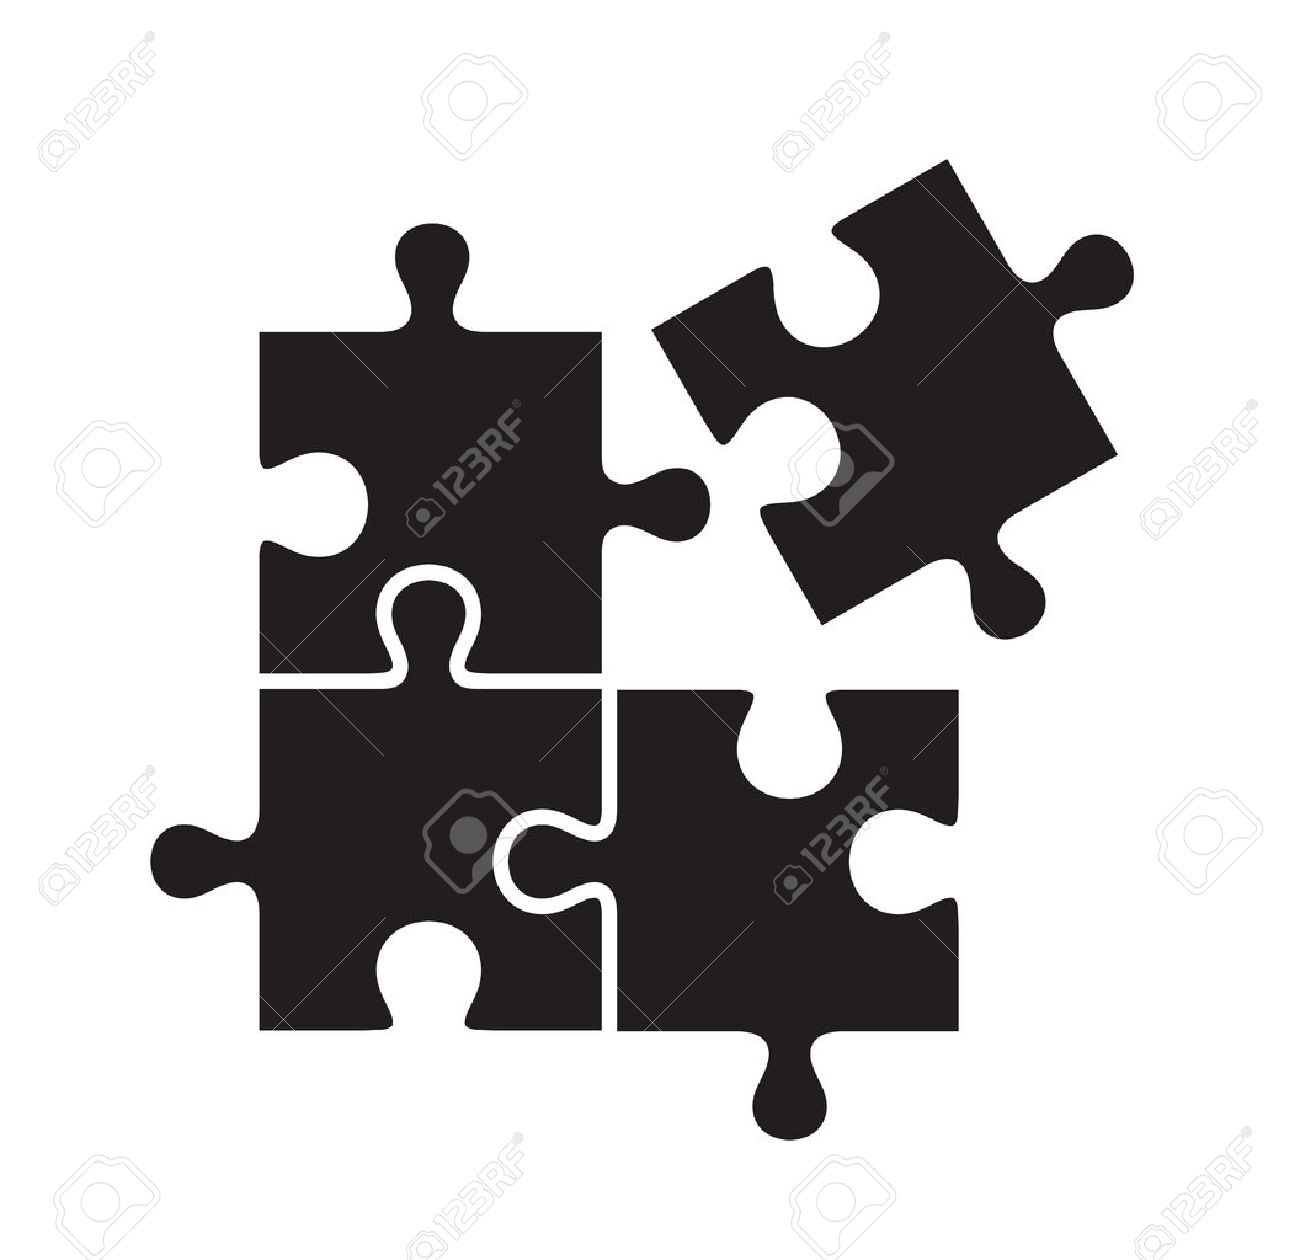 vector black puzzles icon on white background - 46968766